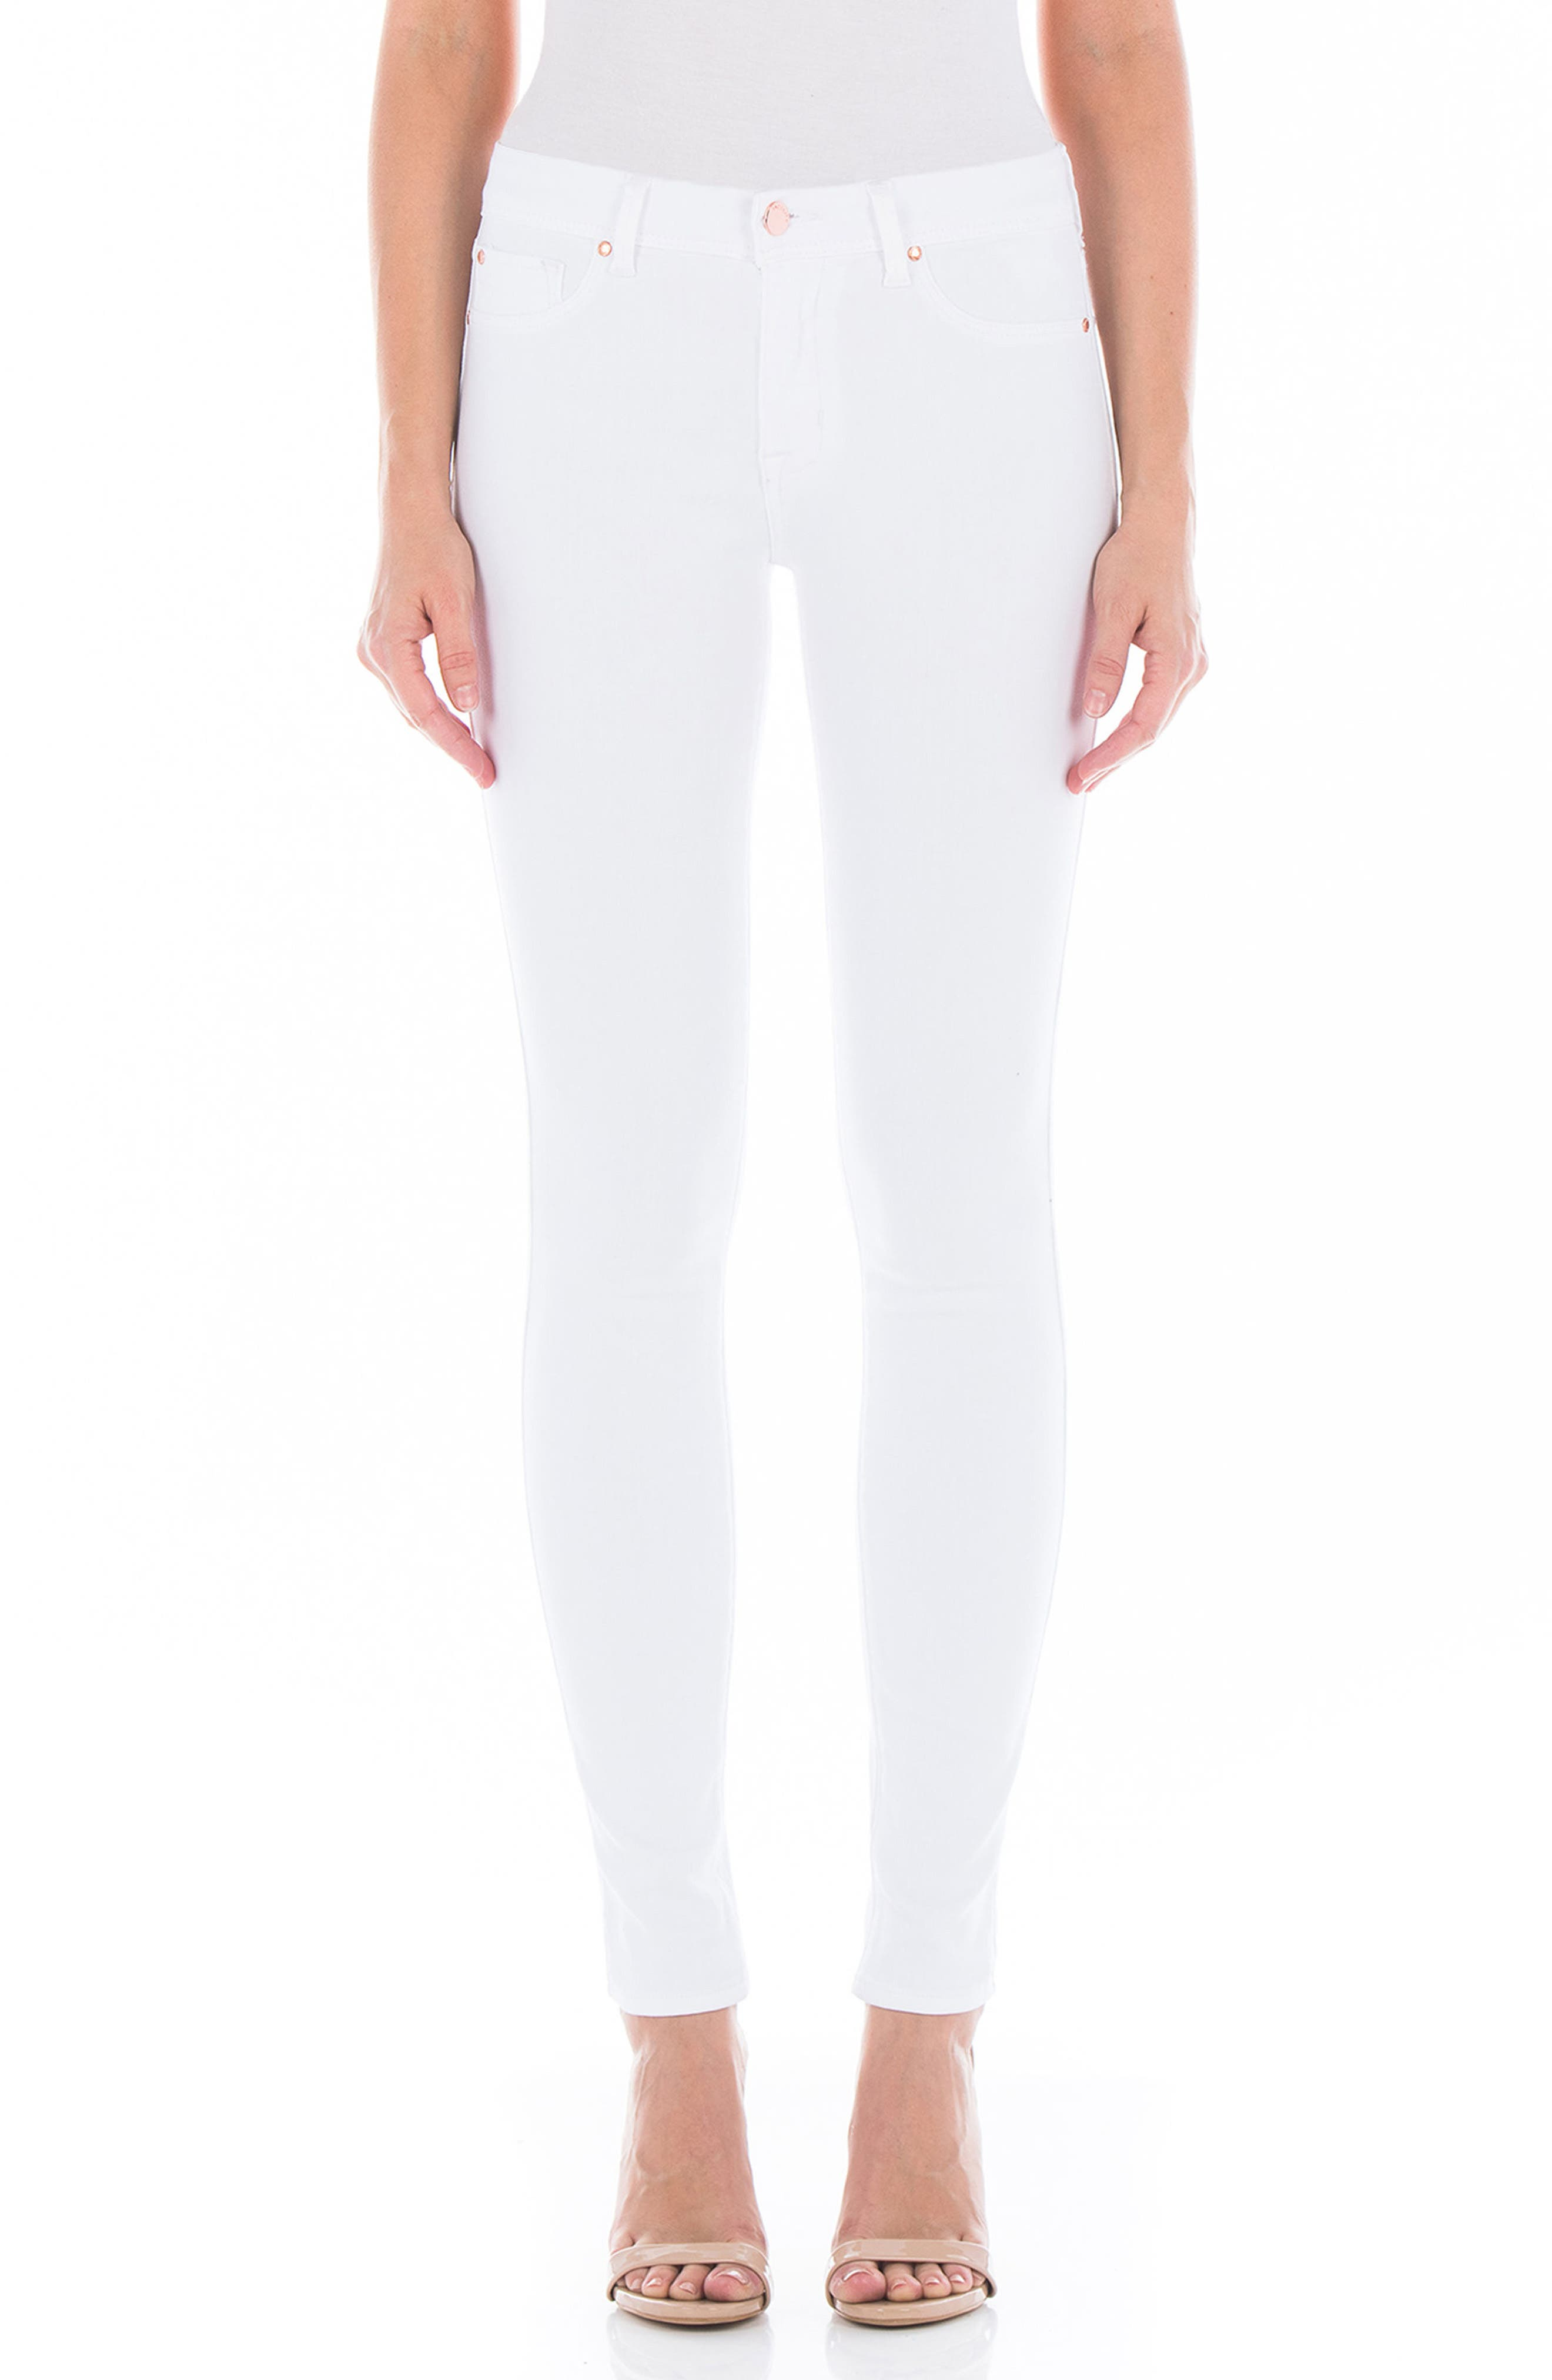 Belvedere Skinny Jeans,                         Main,                         color, 100